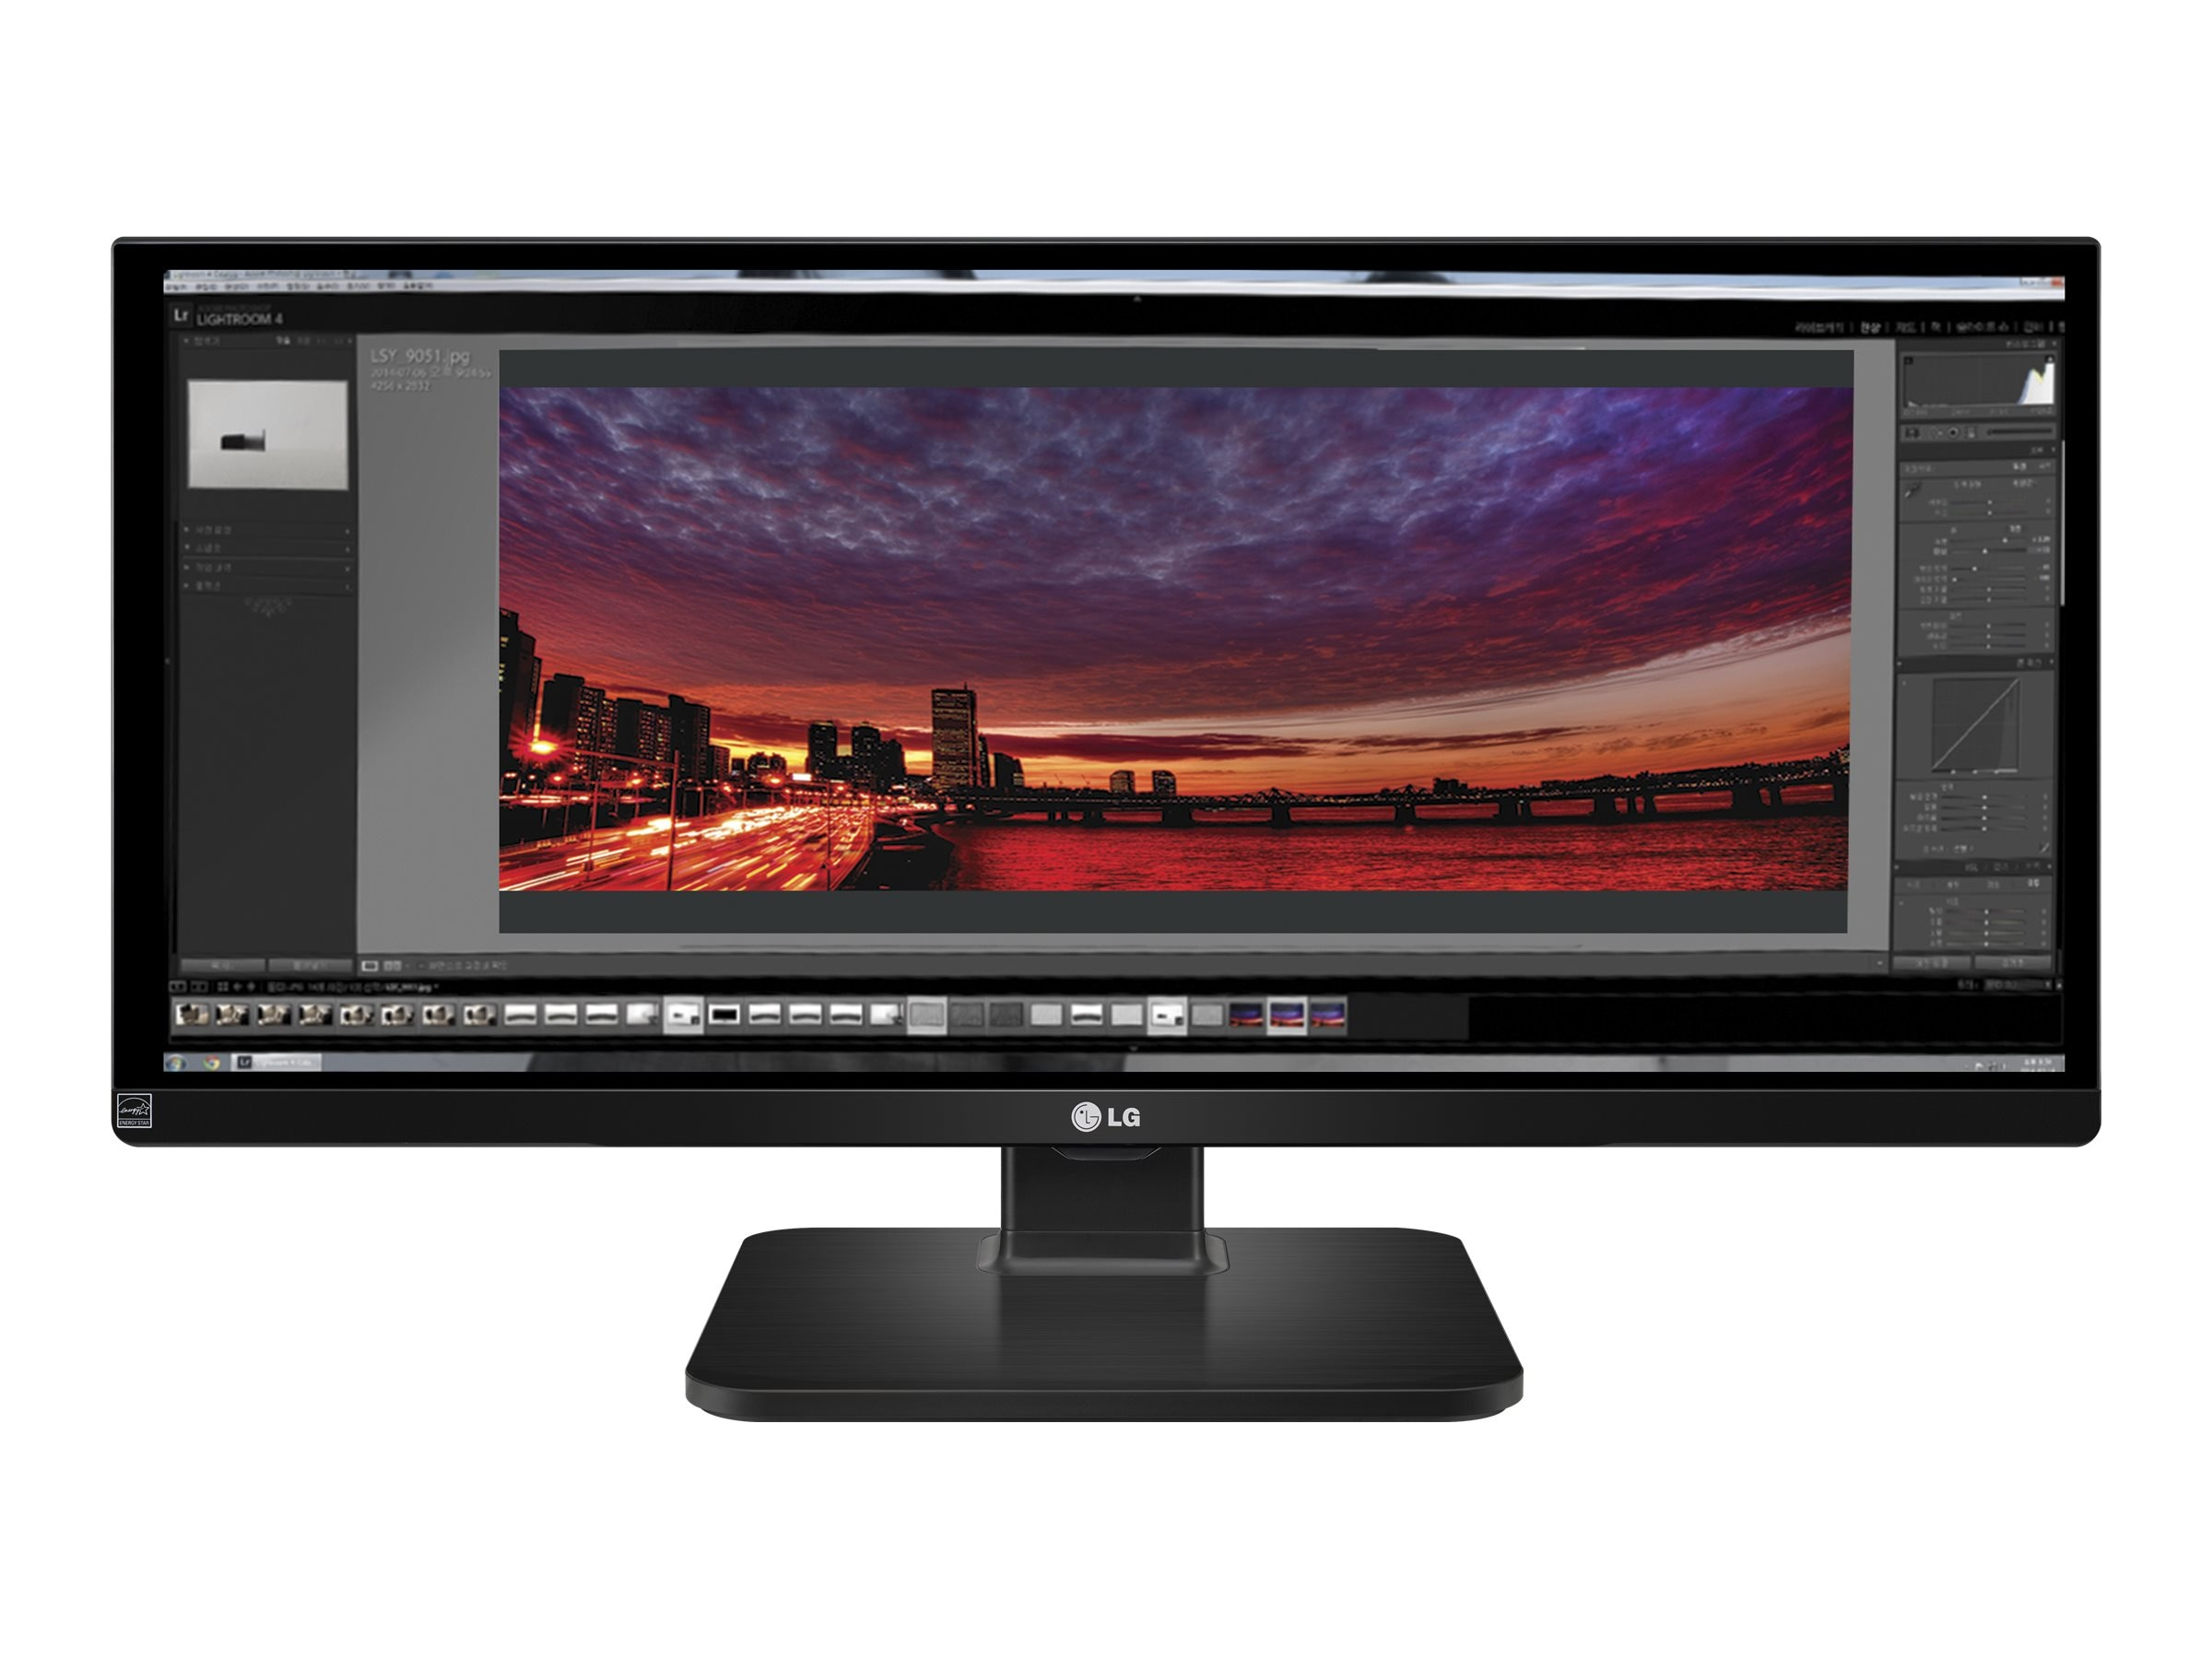 LG 29 UB55-B Full HD LED-LCD Ultrawide Monitor, Black, 29UB55-B